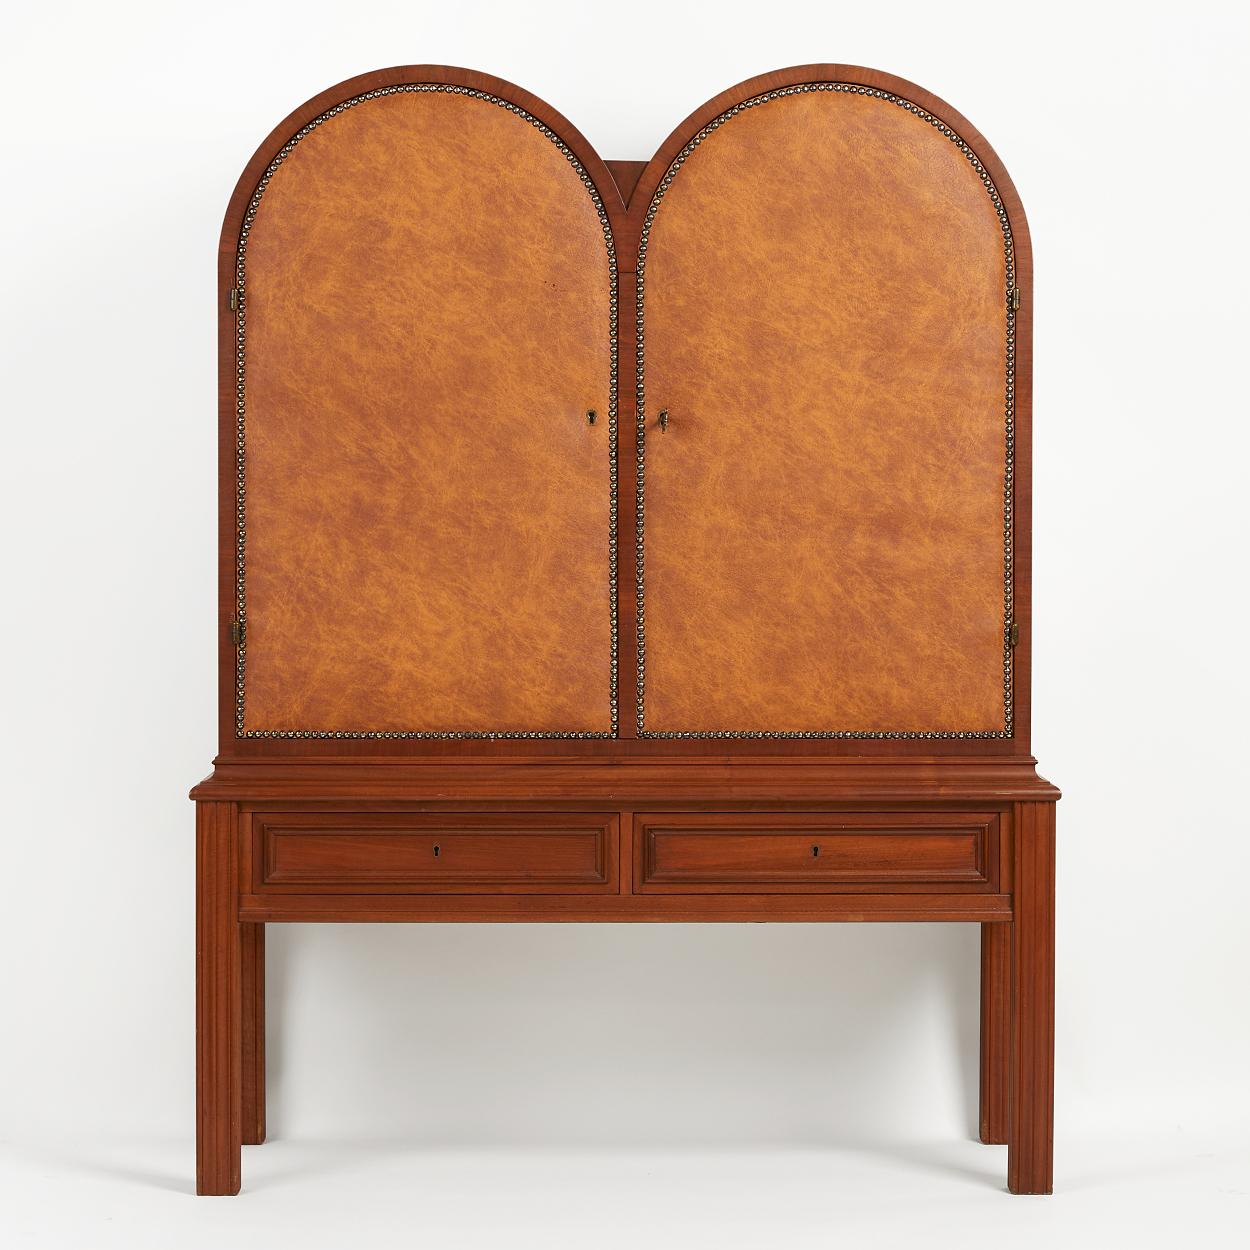 A bar cabinet attributed to Otto Schulz